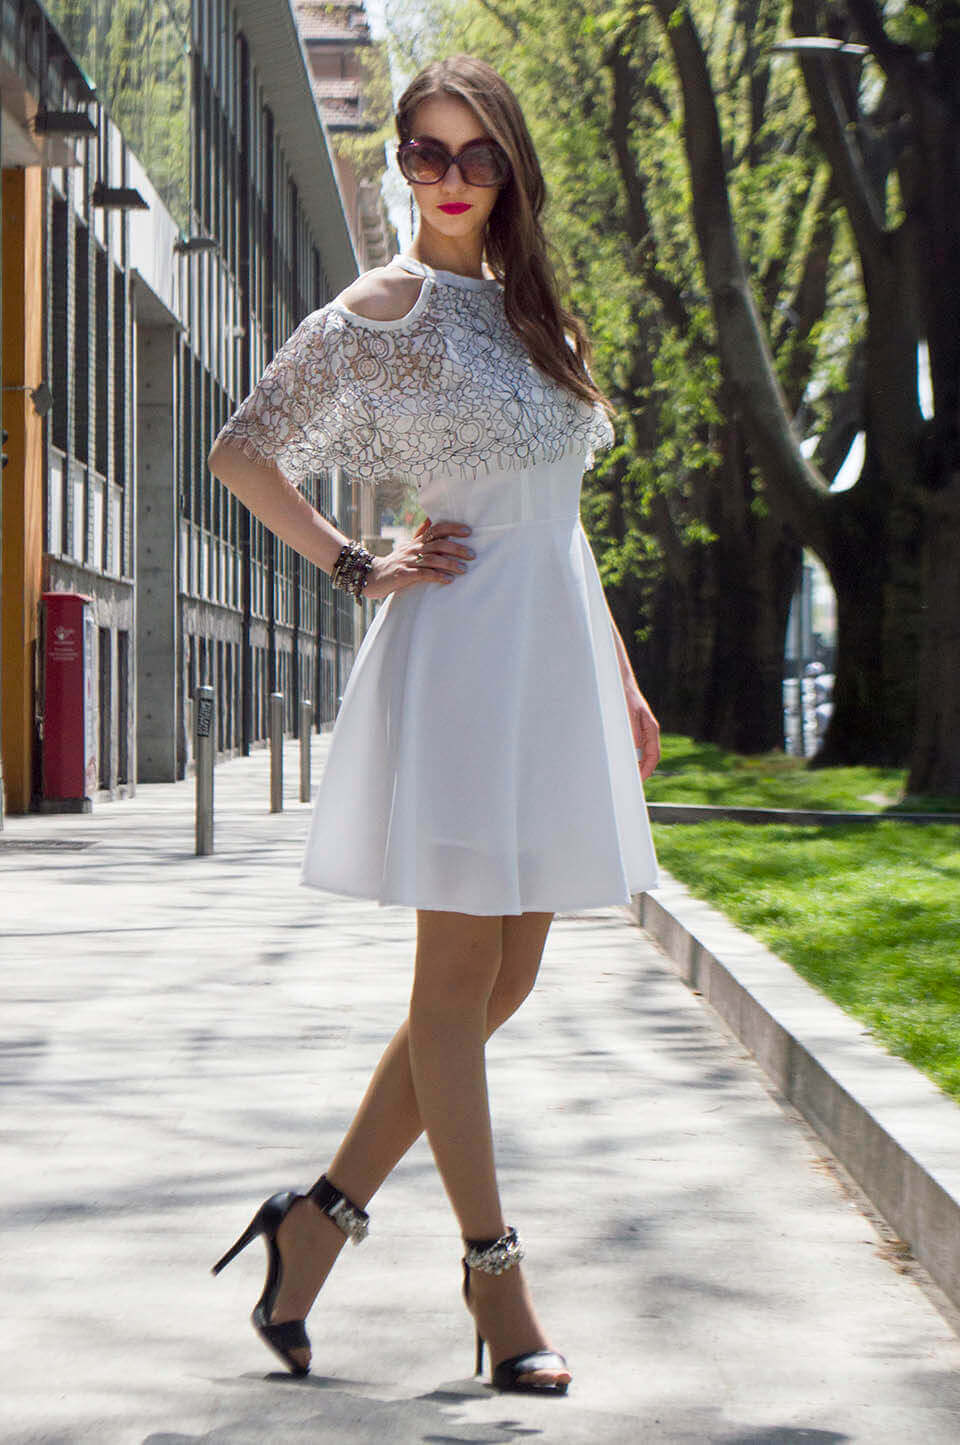 White Short dress for summer - Manu Luize